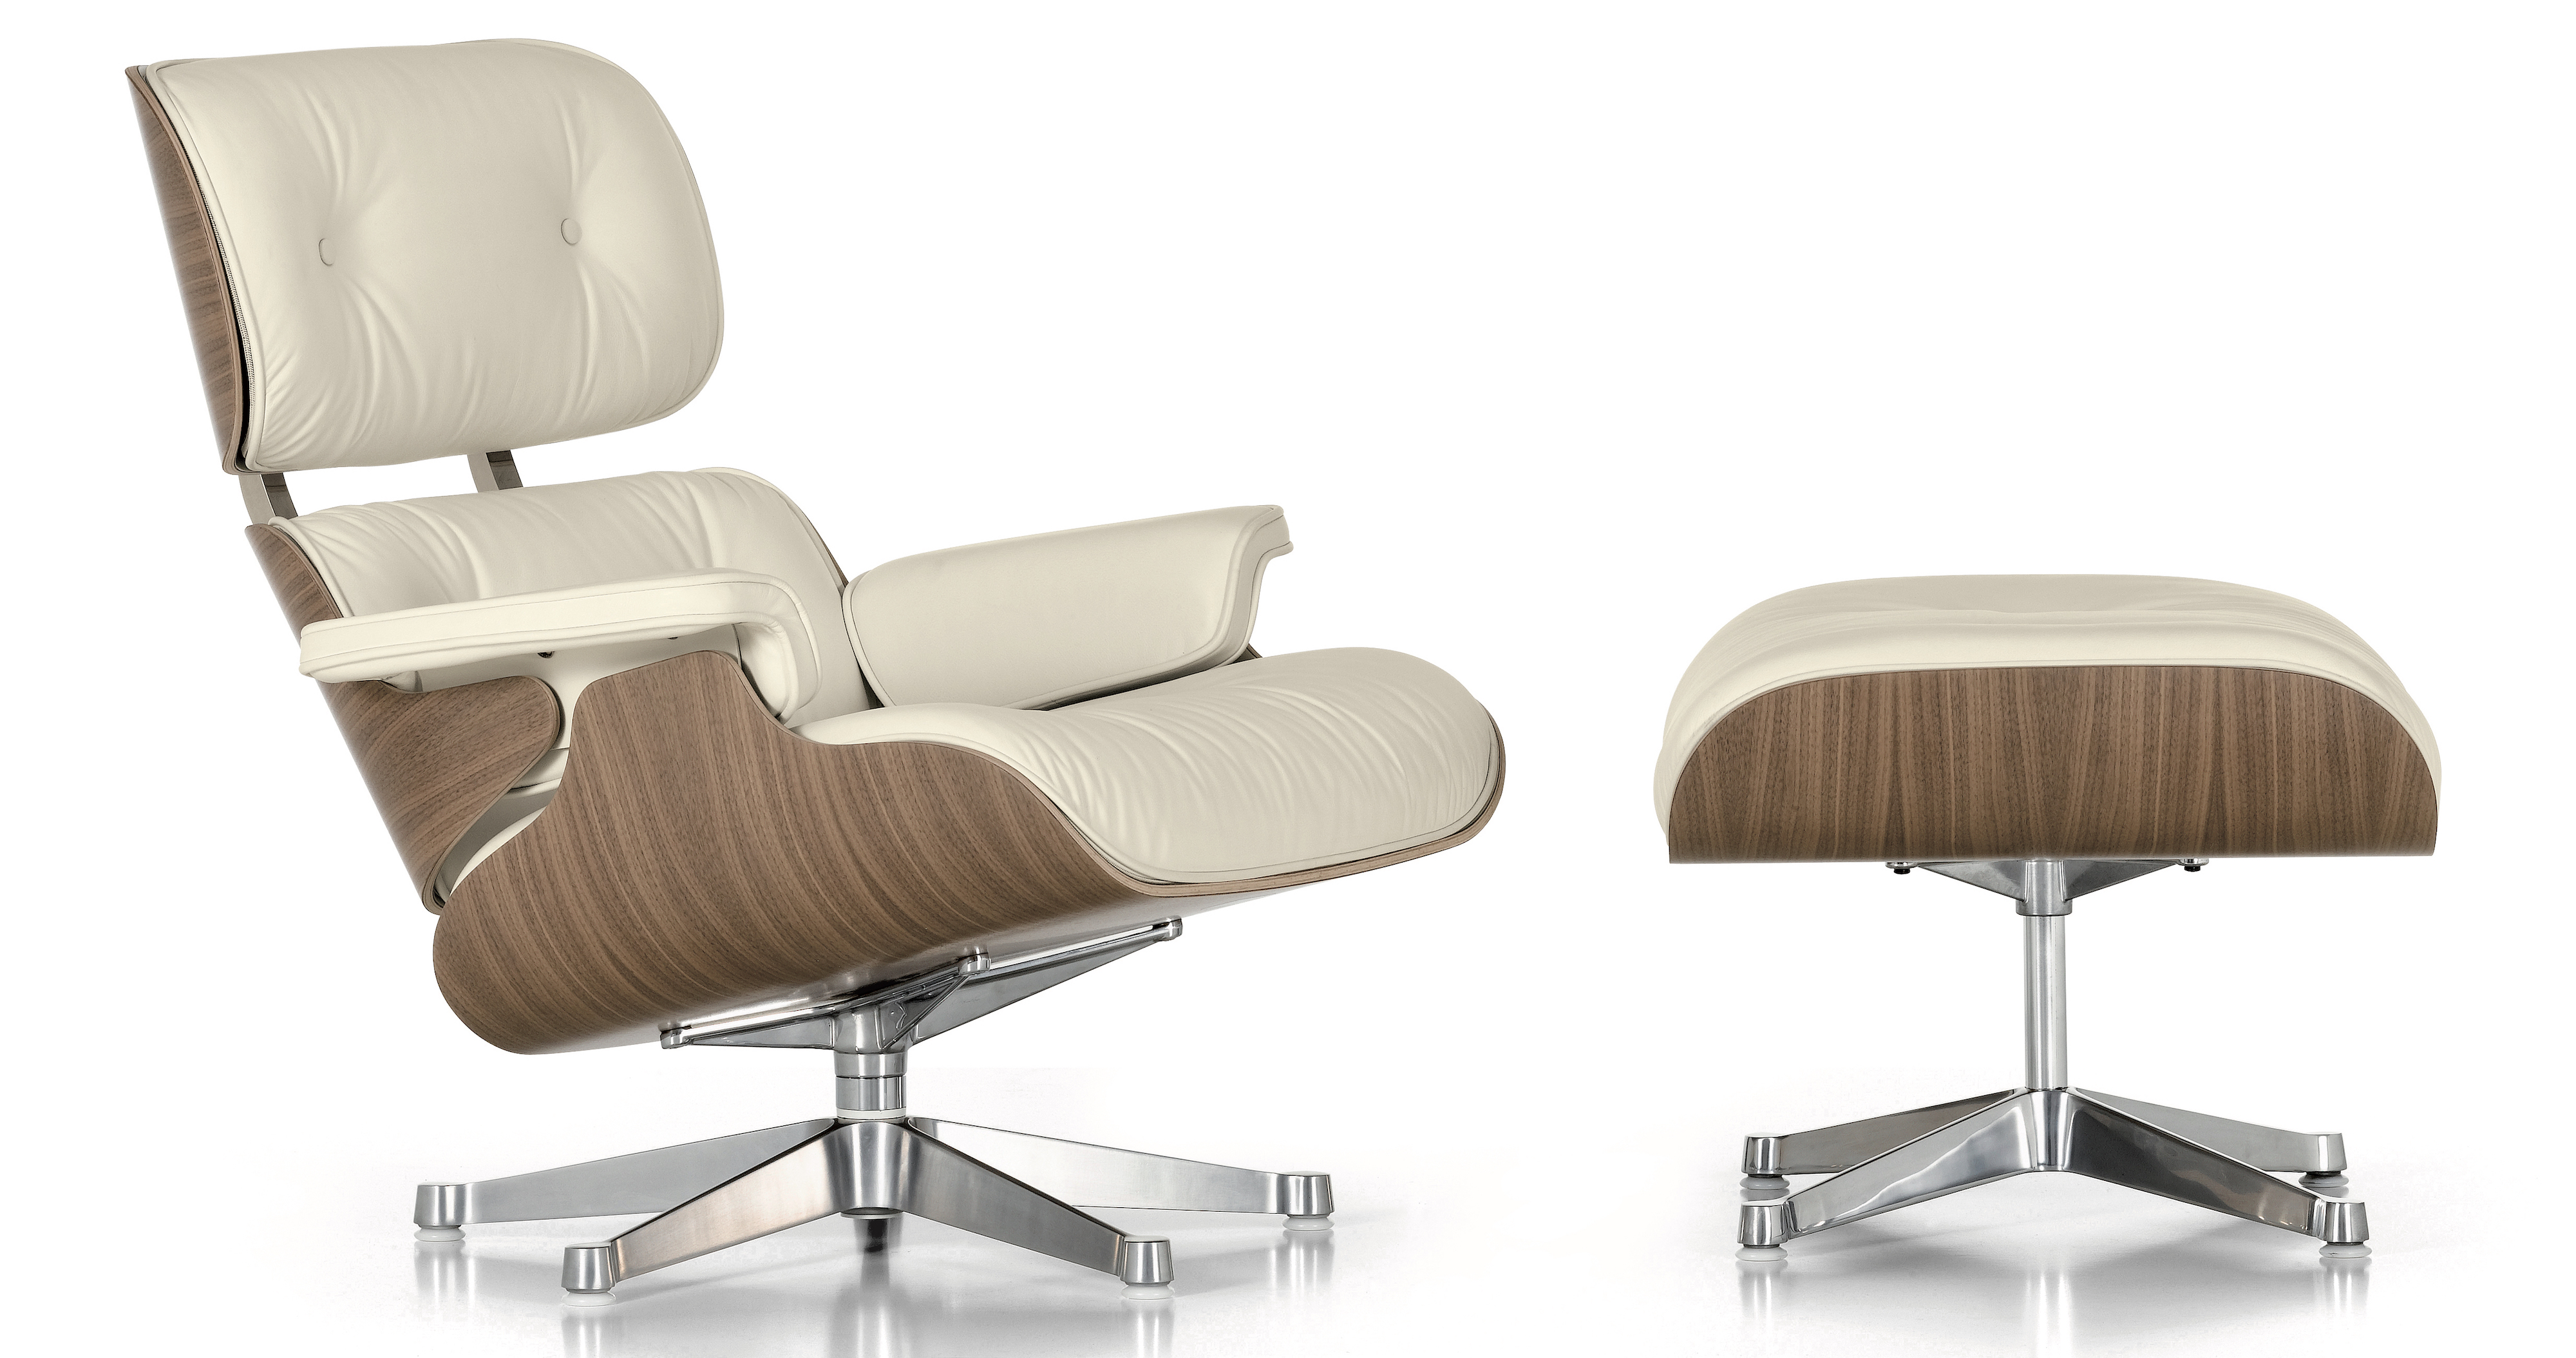 Miraculous Vitra Eames Lounge Chair Design Charles Et Ray Eames 1956 Lamtechconsult Wood Chair Design Ideas Lamtechconsultcom